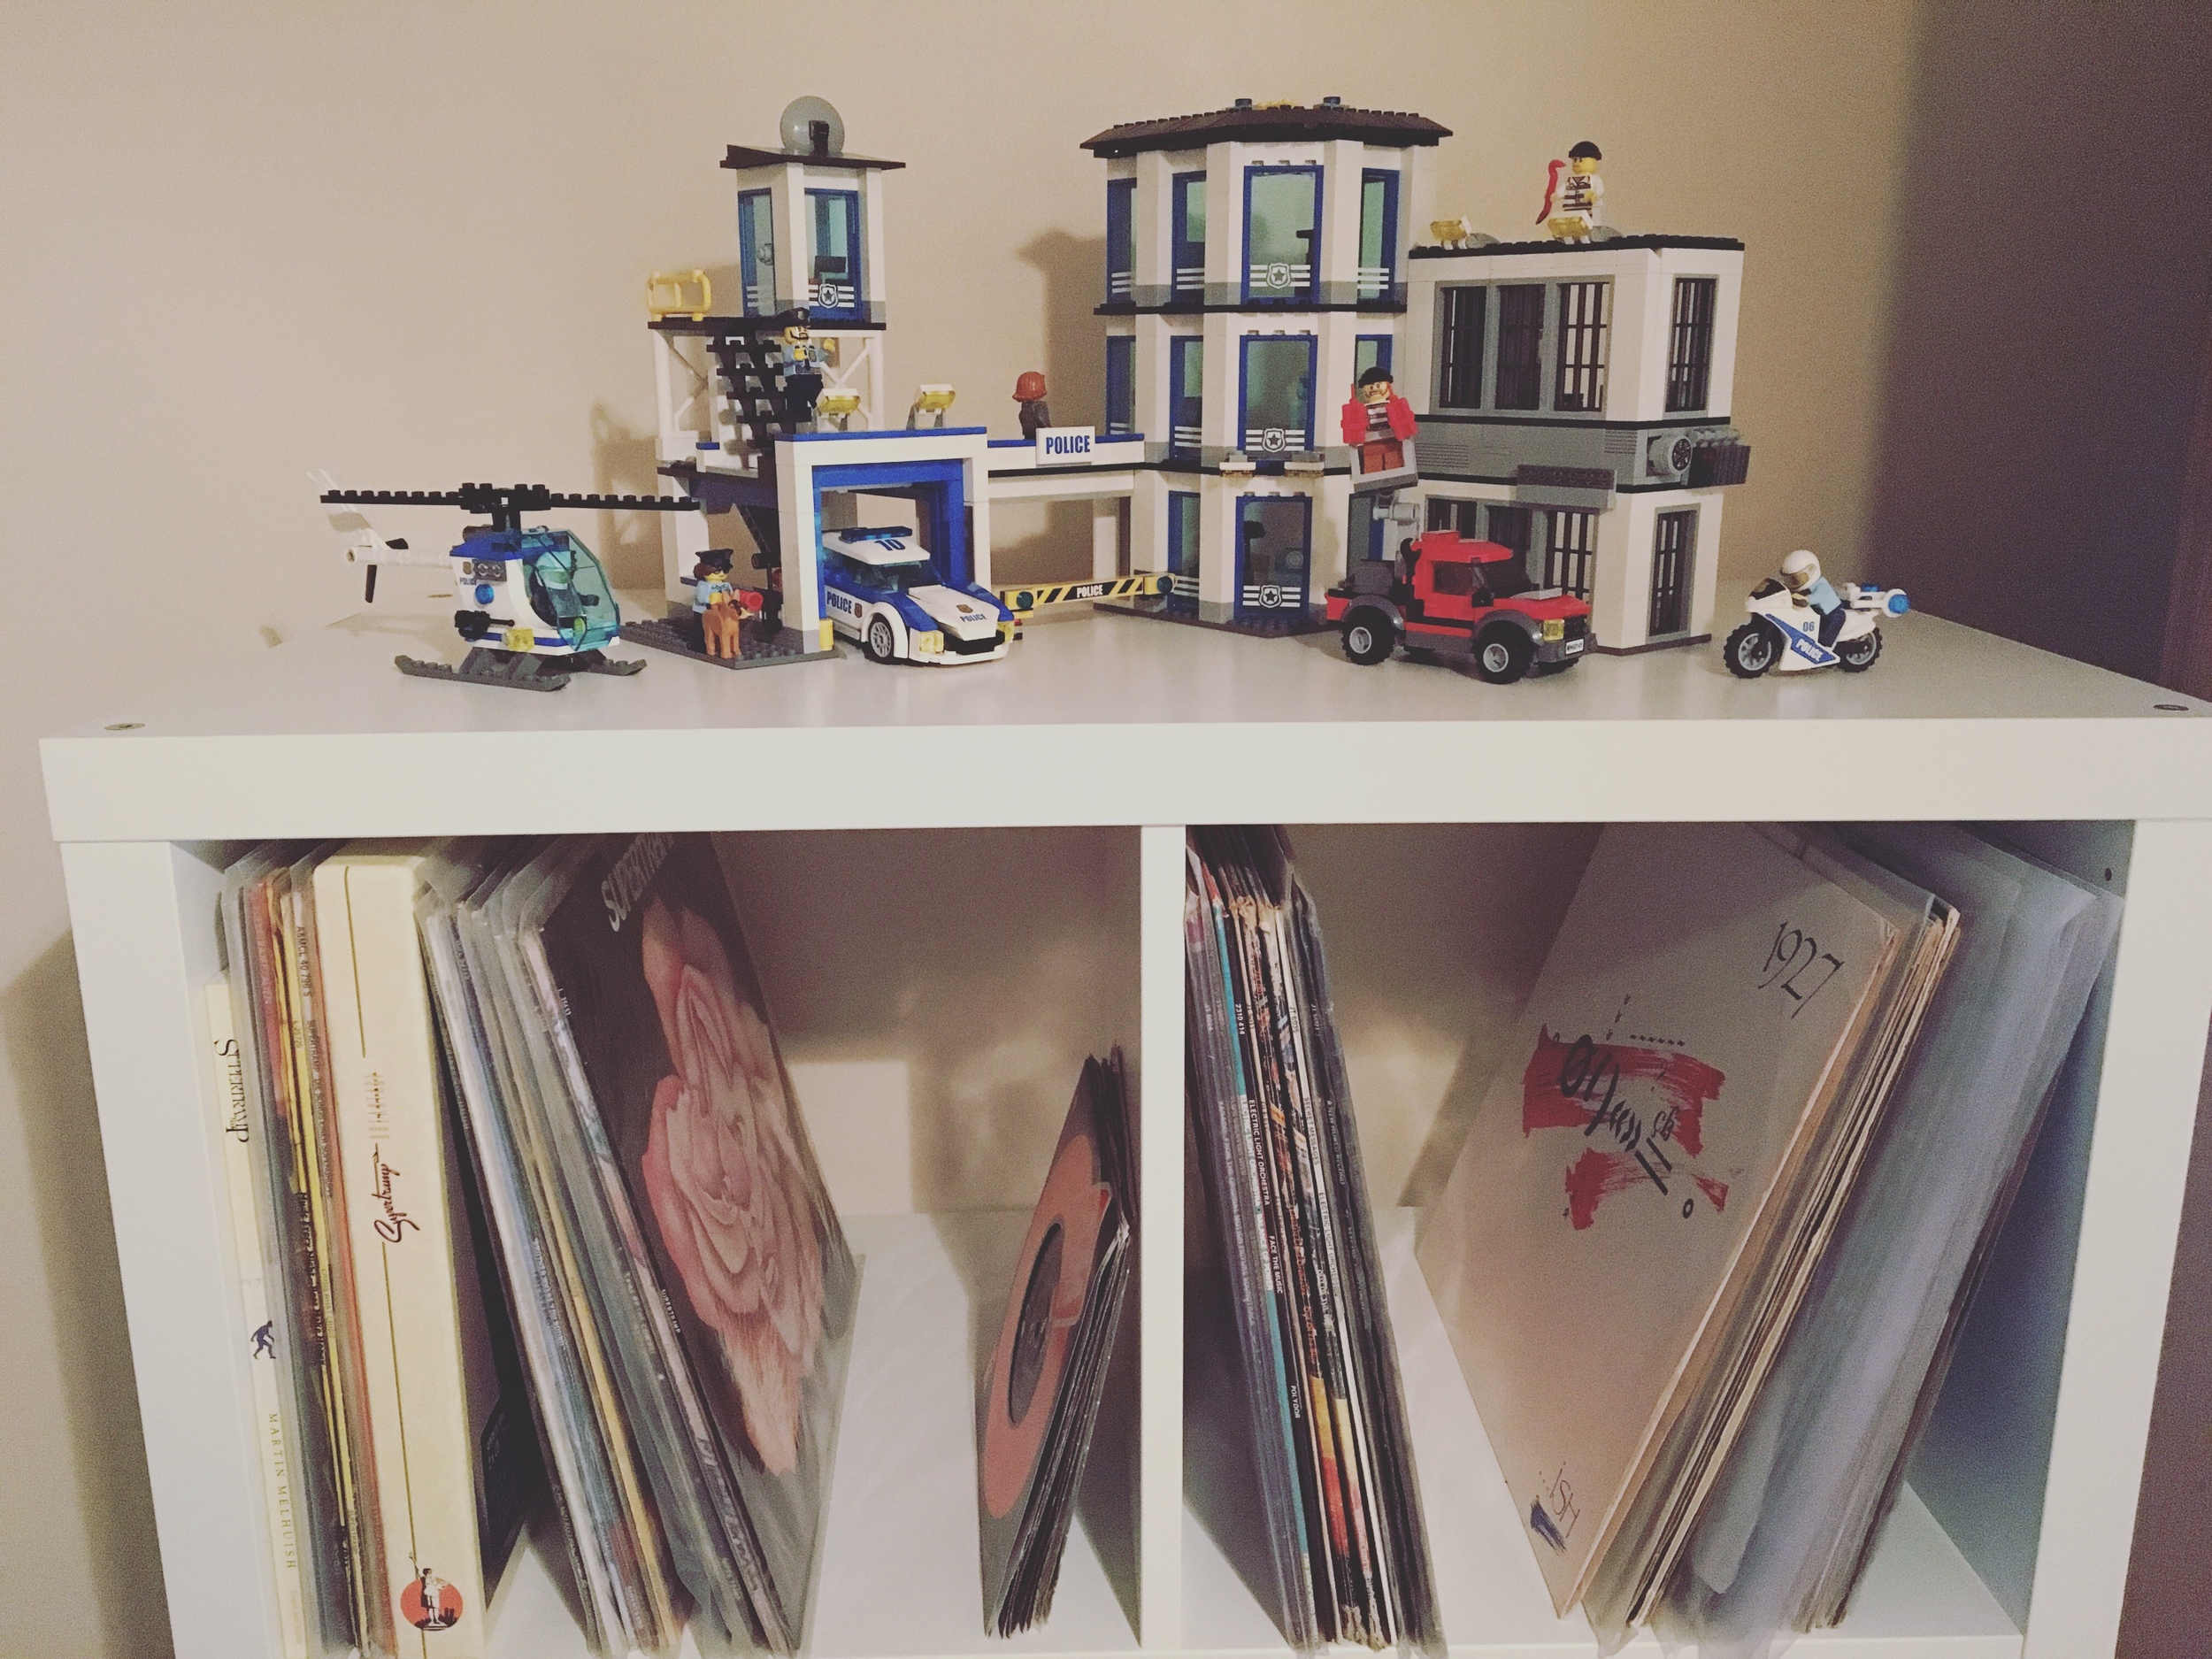 Vinyl and Lego are helping me think like my younger self.